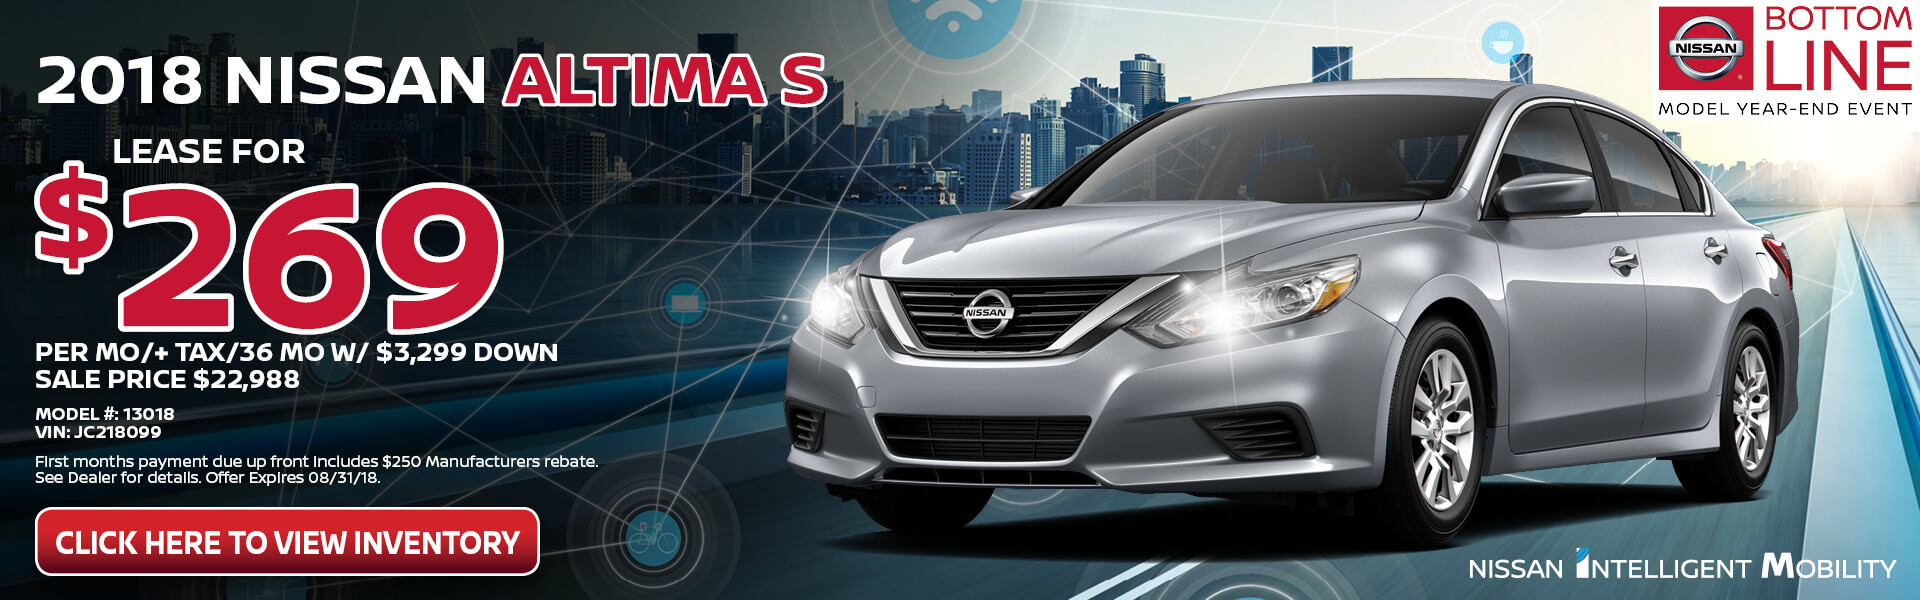 Nissan Altima $269 Lease